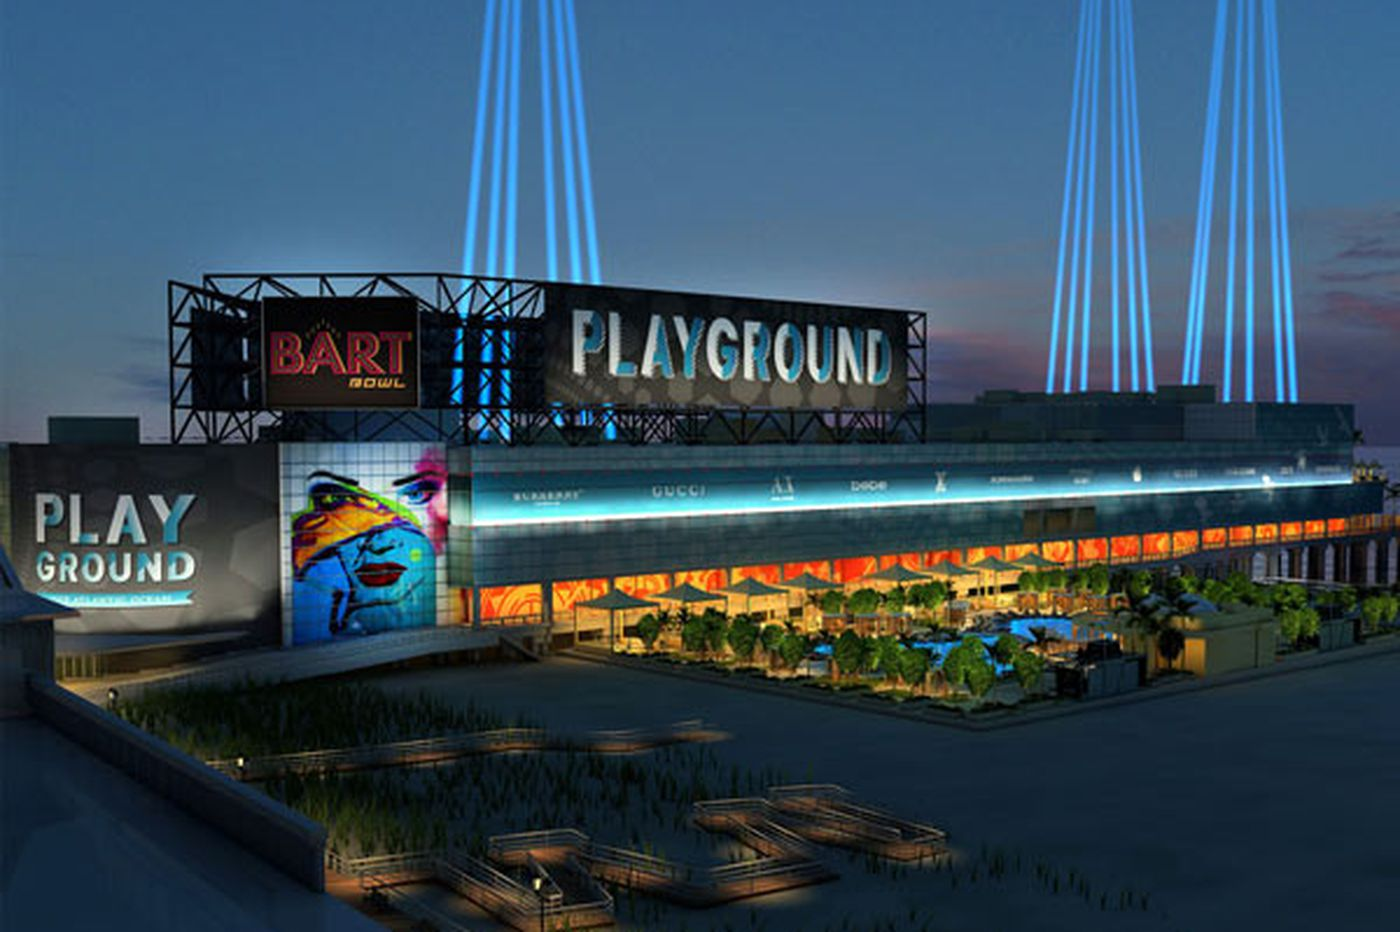 Developer Bart Blatstein goes all-in with promises for failed Atlantic City complex